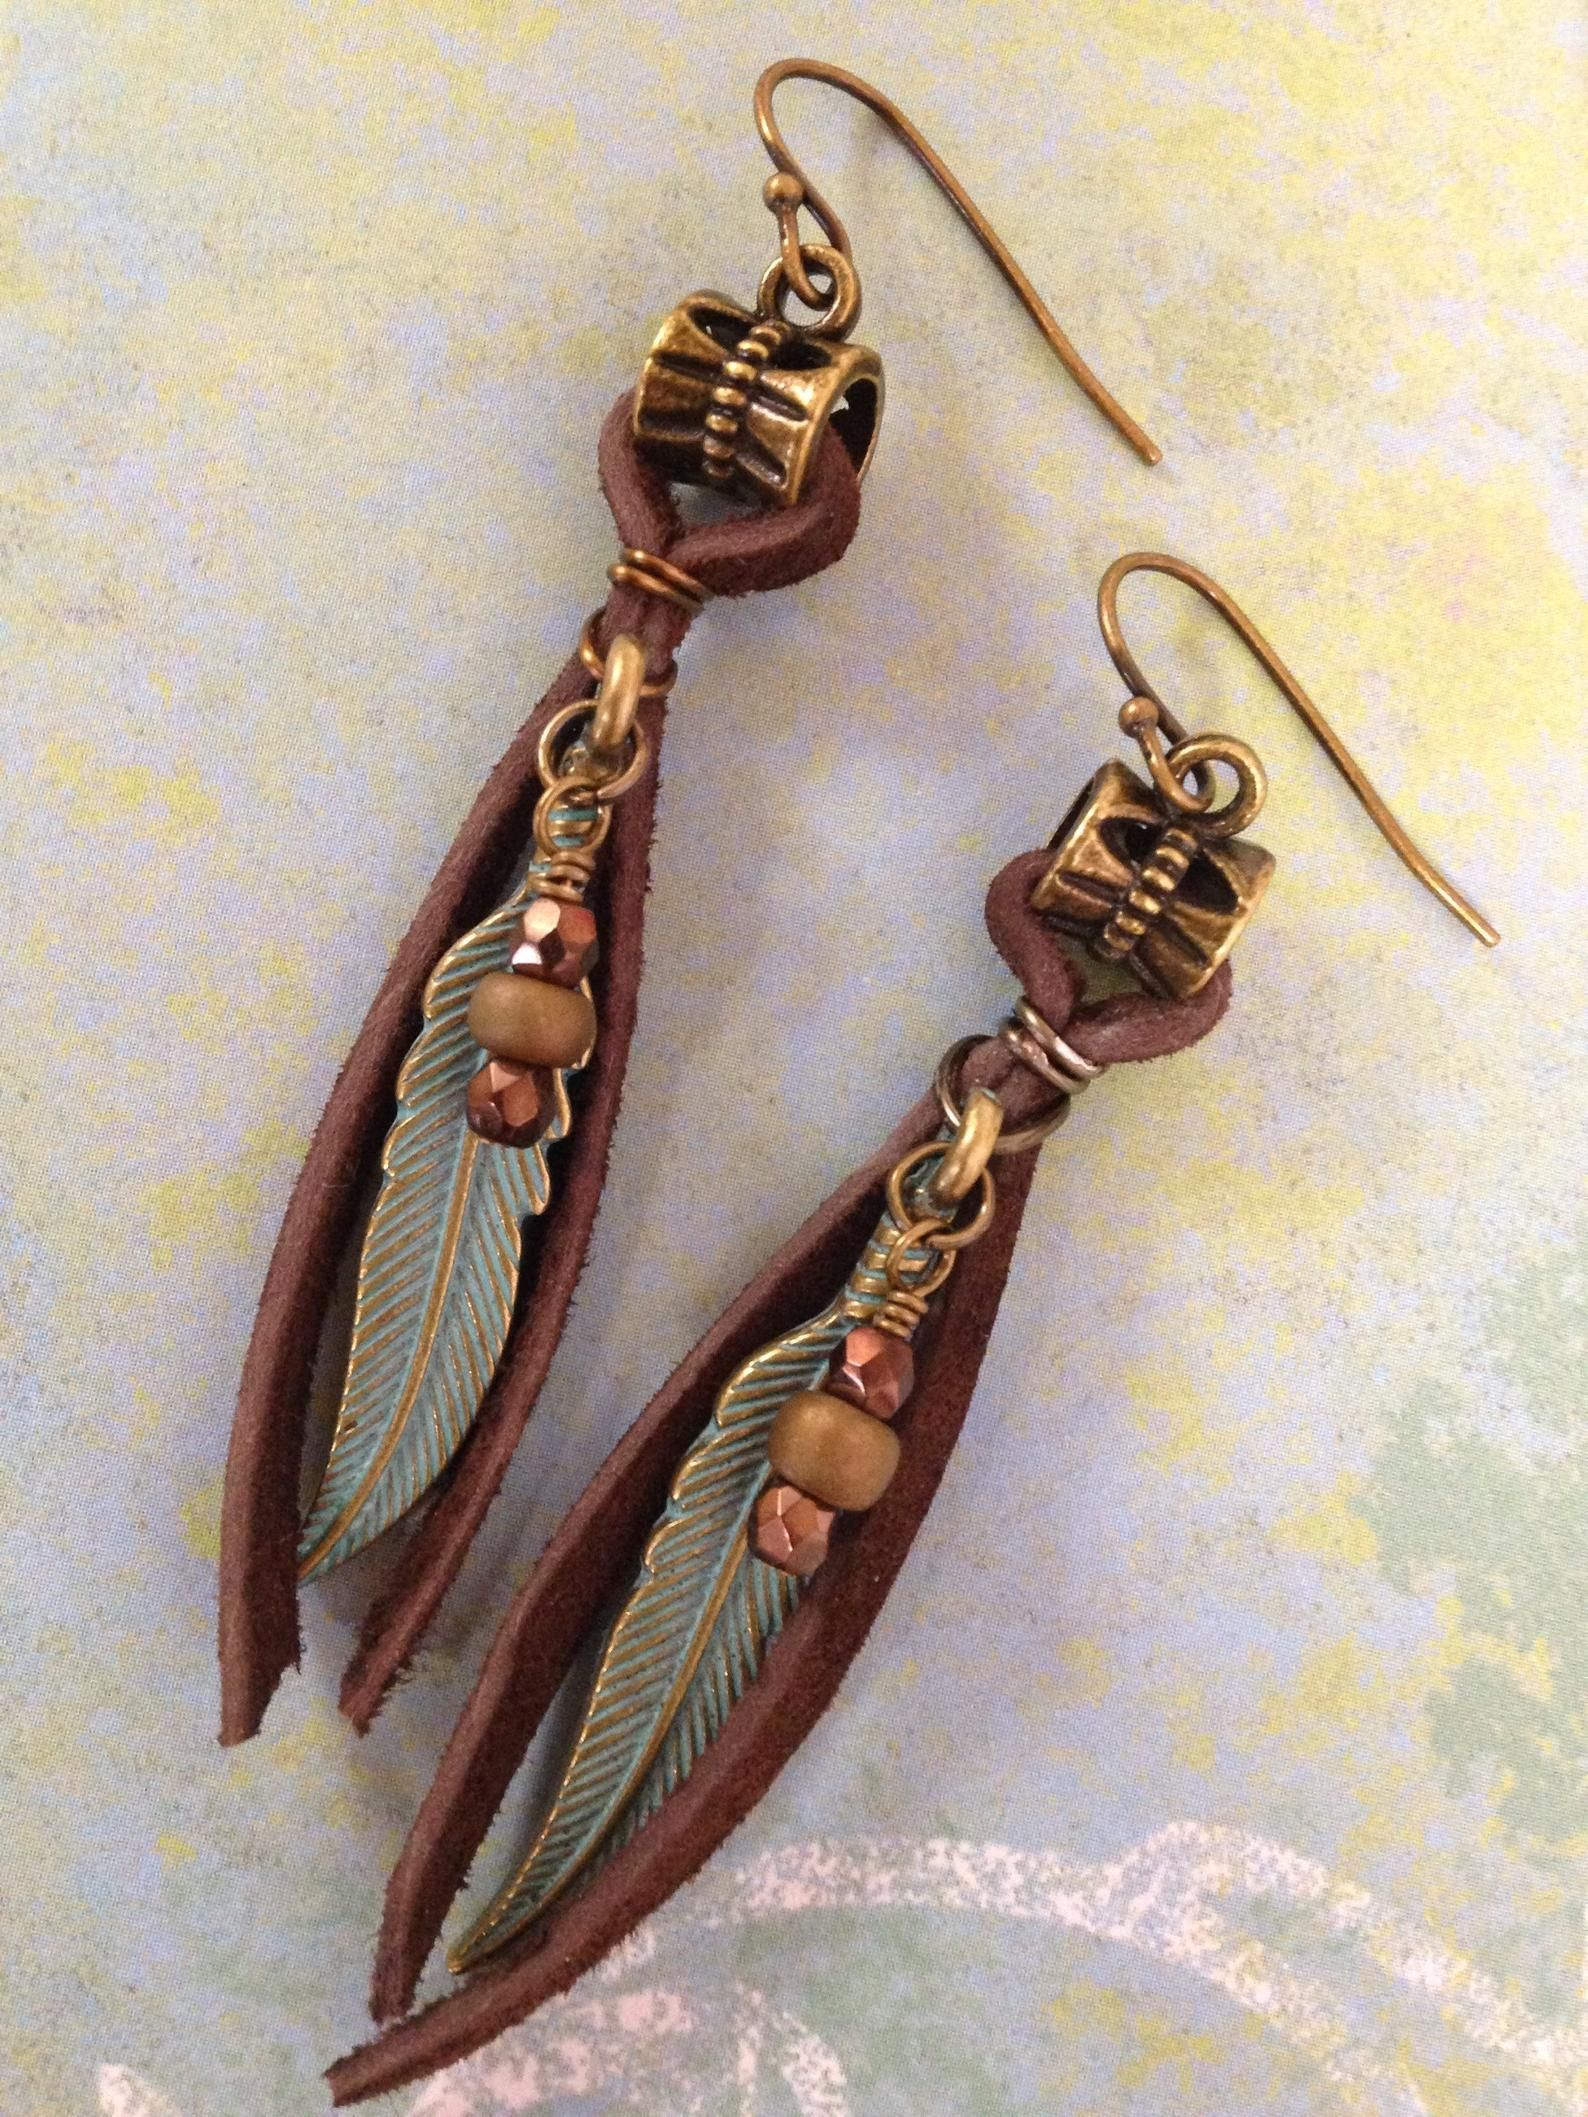 Photo of Boho Earrings Leather Earrings Feather Earrings Bohemian Earrings Boho Jewelry Tribal Leather Jewelry Mothers Day Gift for Mom Gift for Her